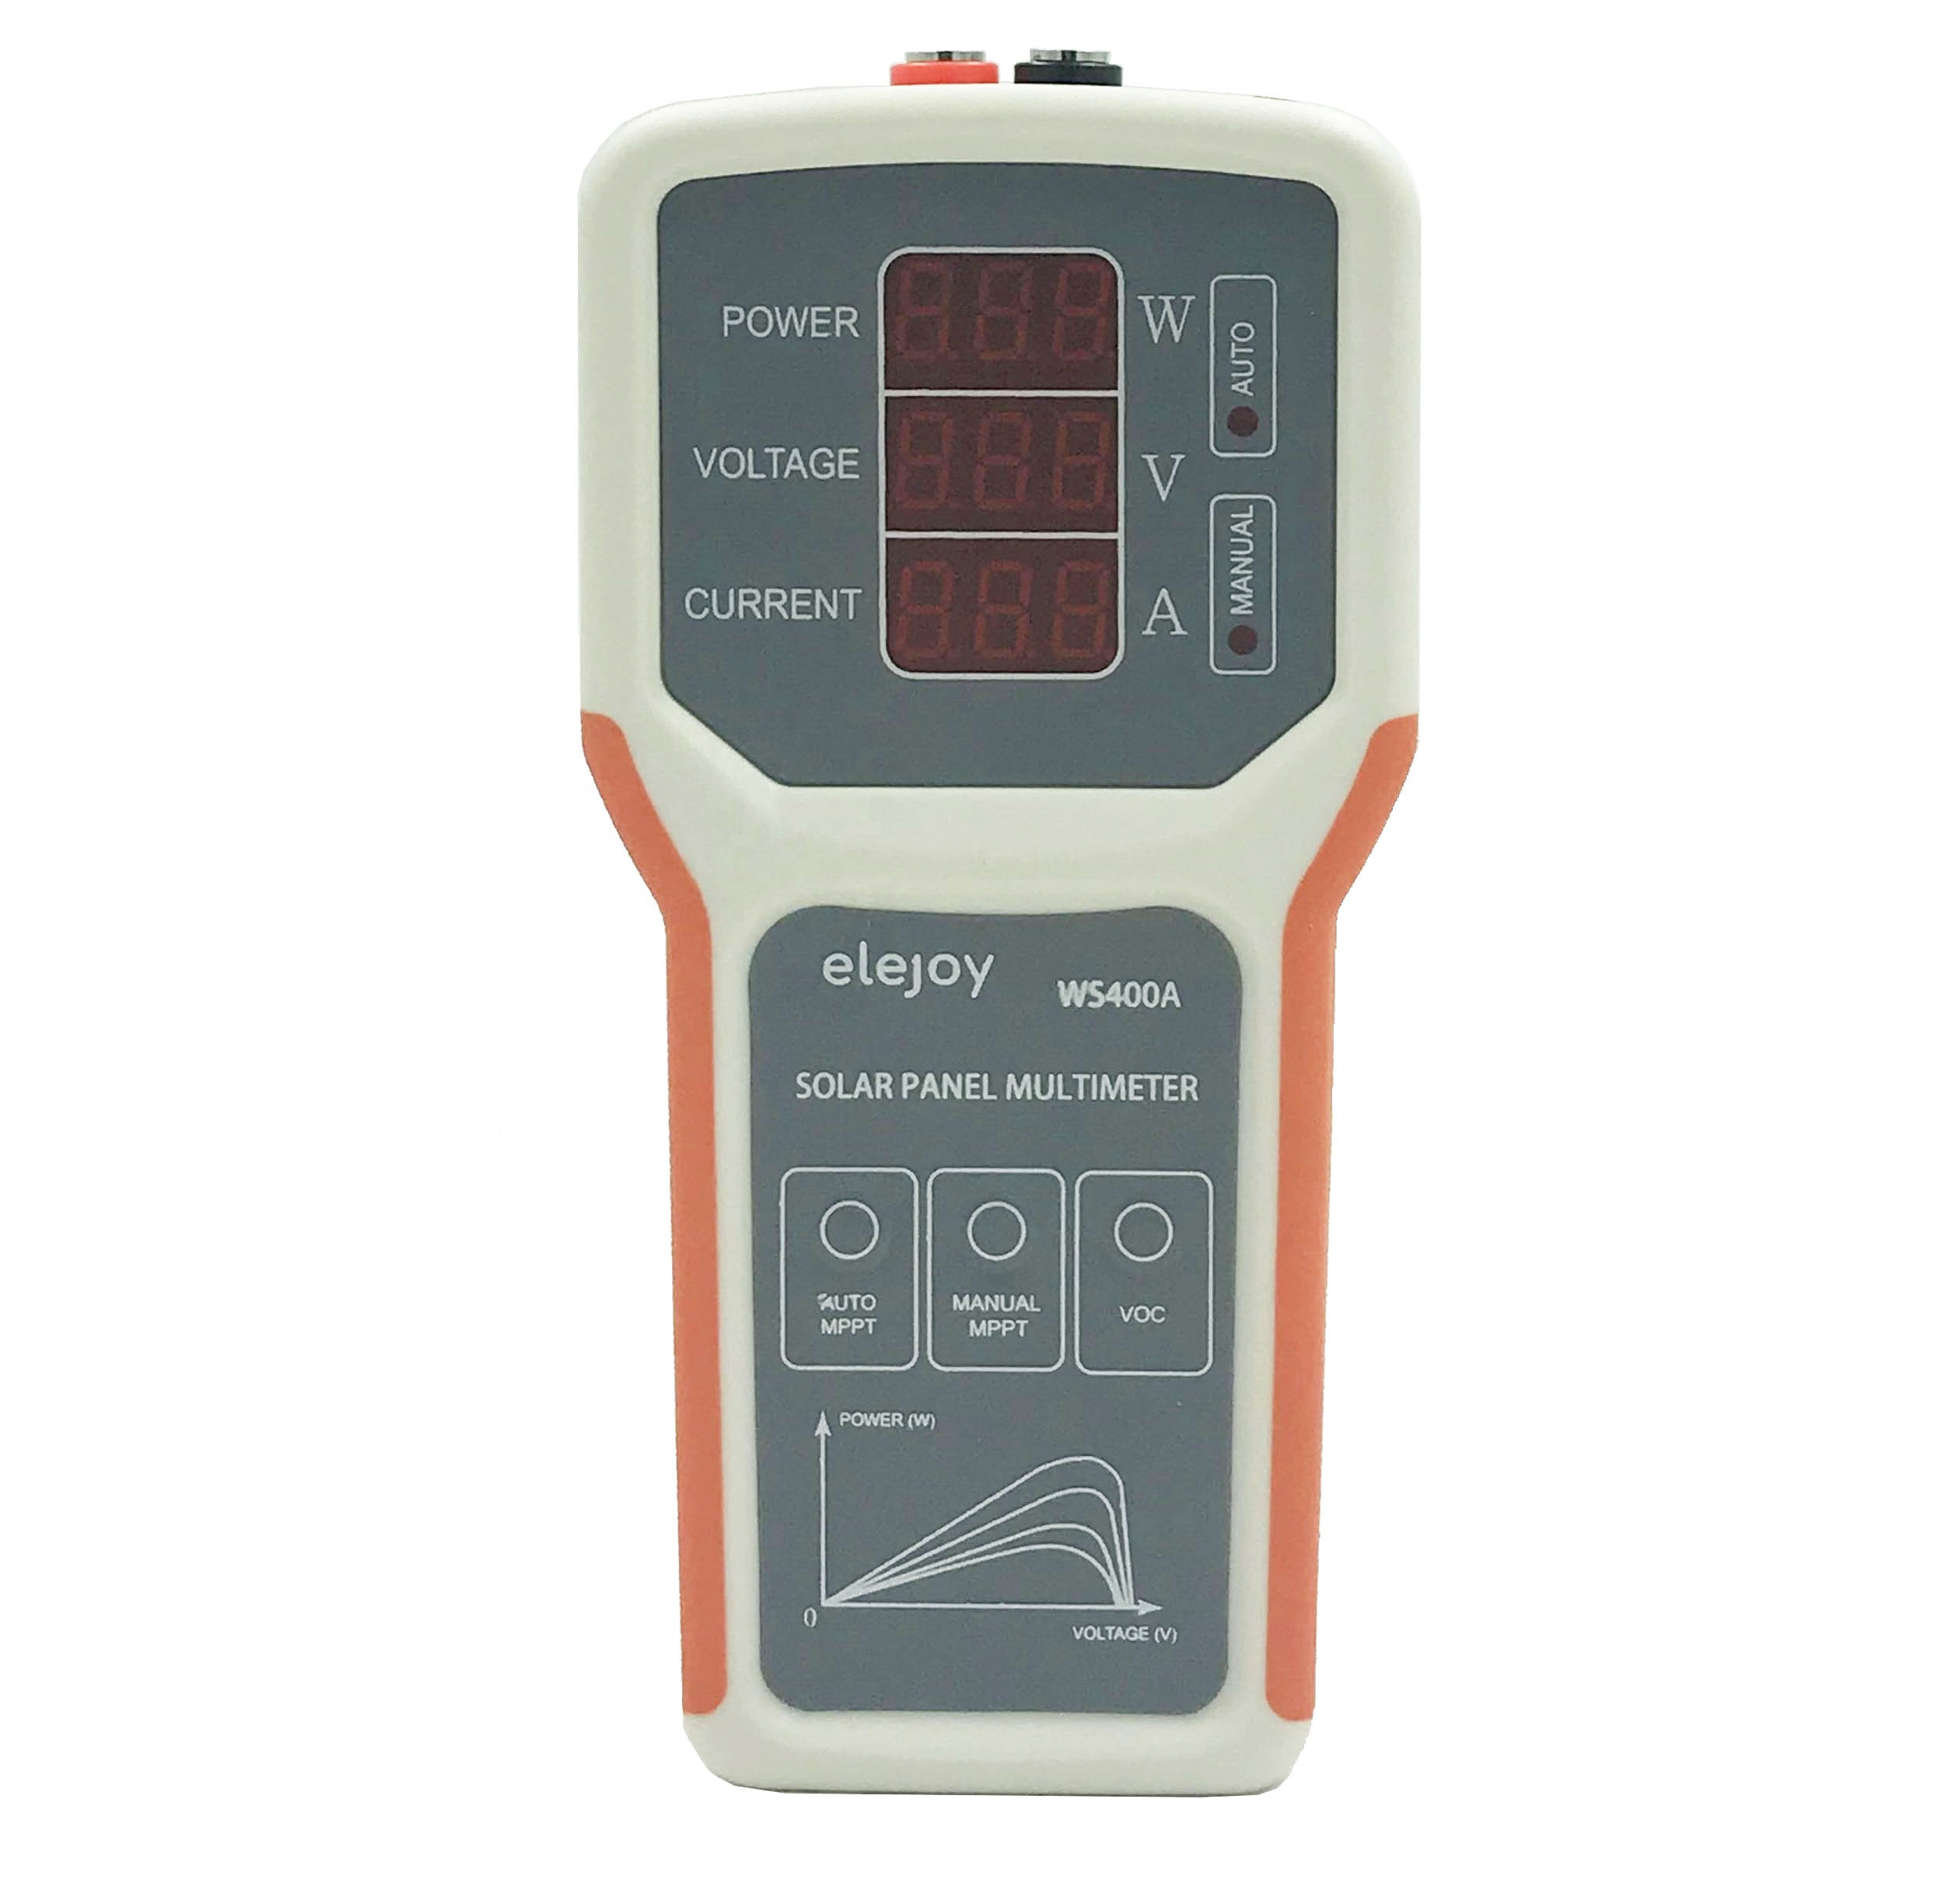 Smart MPPT Solar Panel Multimeter For Energy Systems Solar Panel Tester VOC Testing Power Meter WS400A